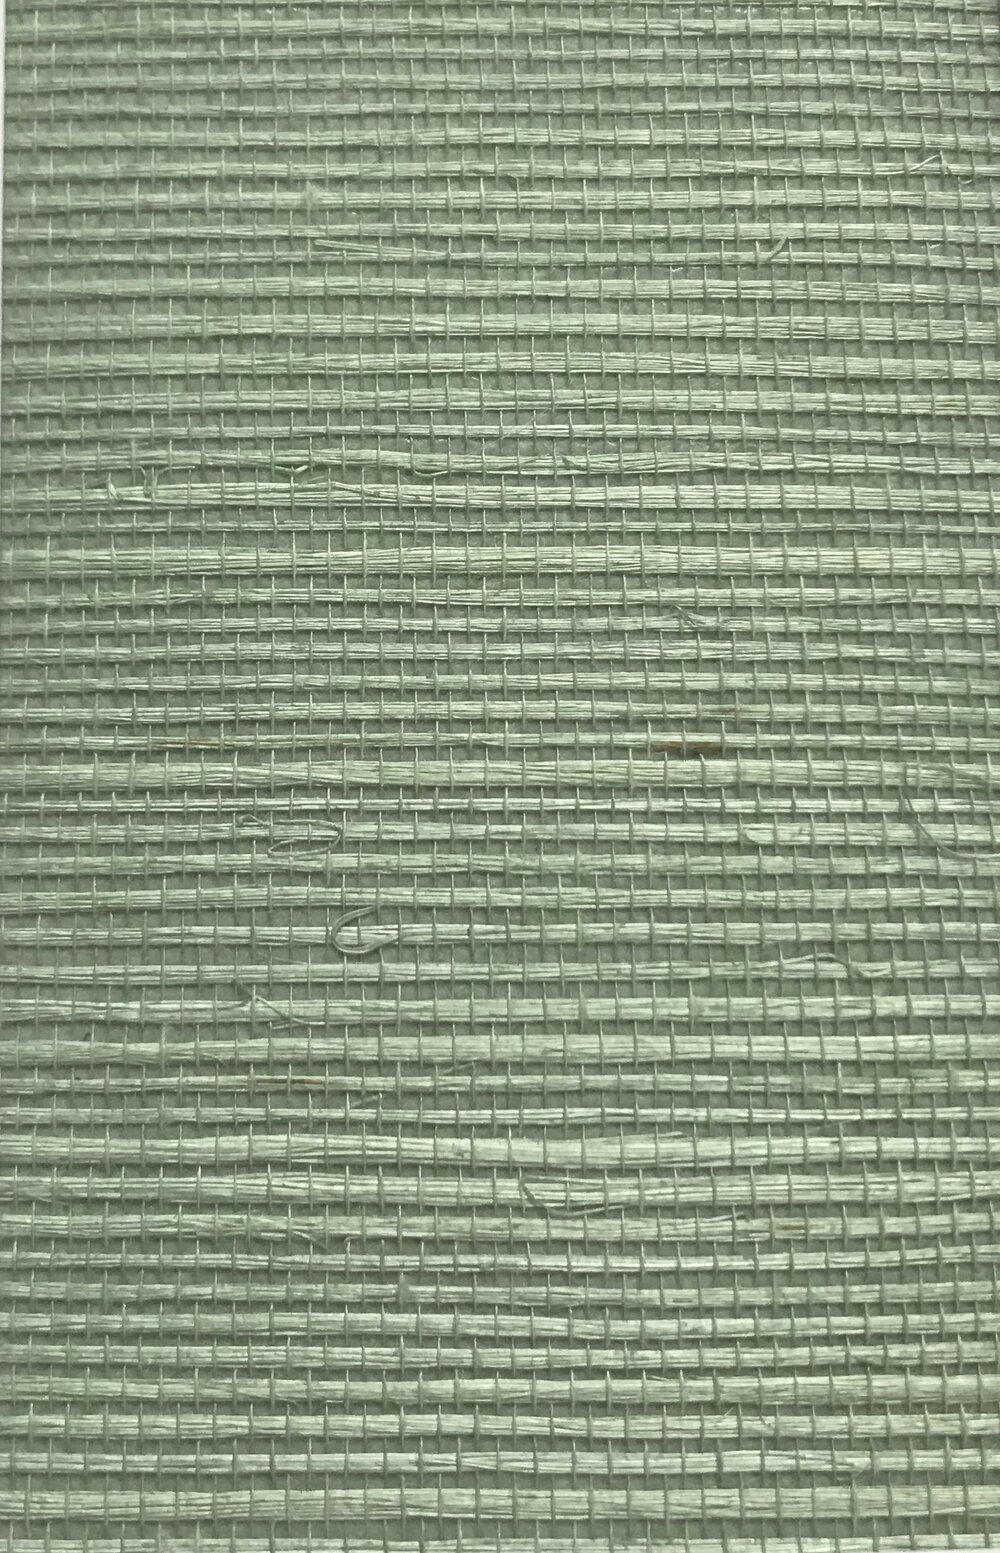 Kanoko Grasscloth Wallpaper - Celadon - by Osborne & Little